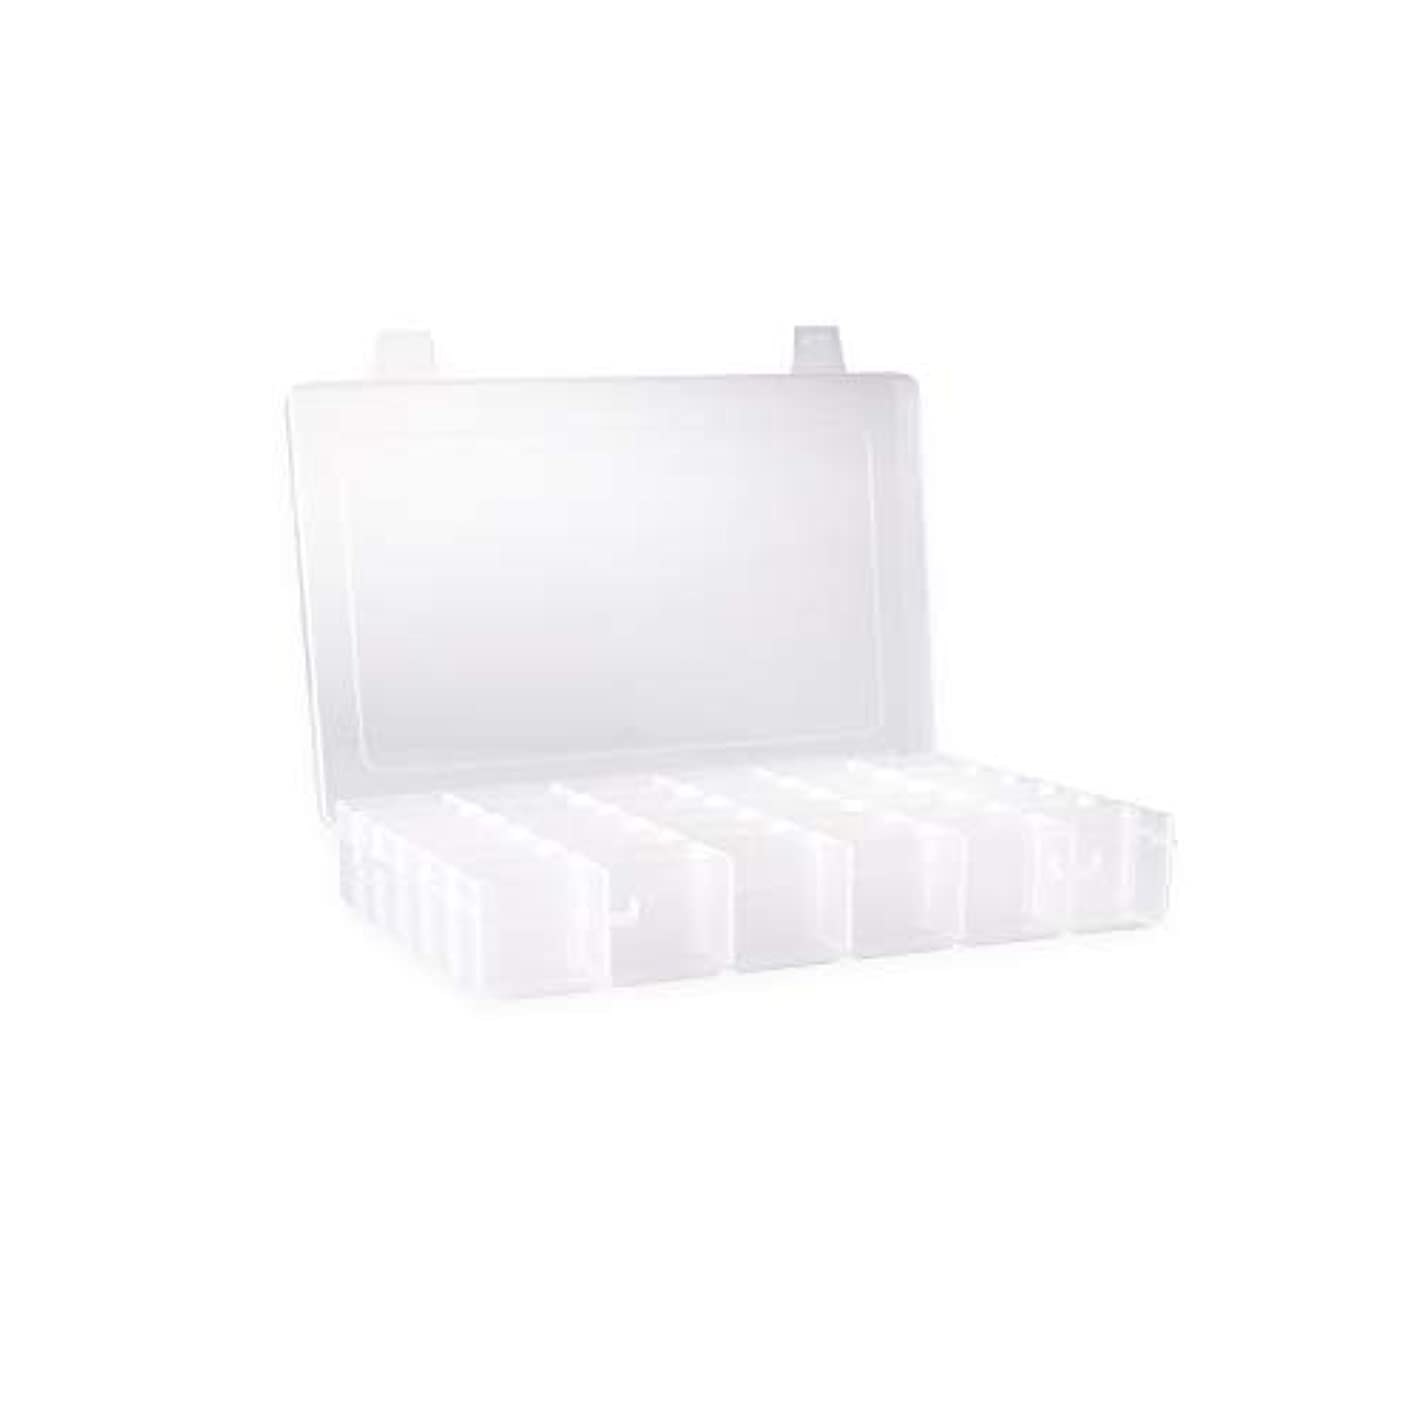 Clear Plastic Jewelry Box Organizers Storage Container With Adjustable Dividers 36 Grids